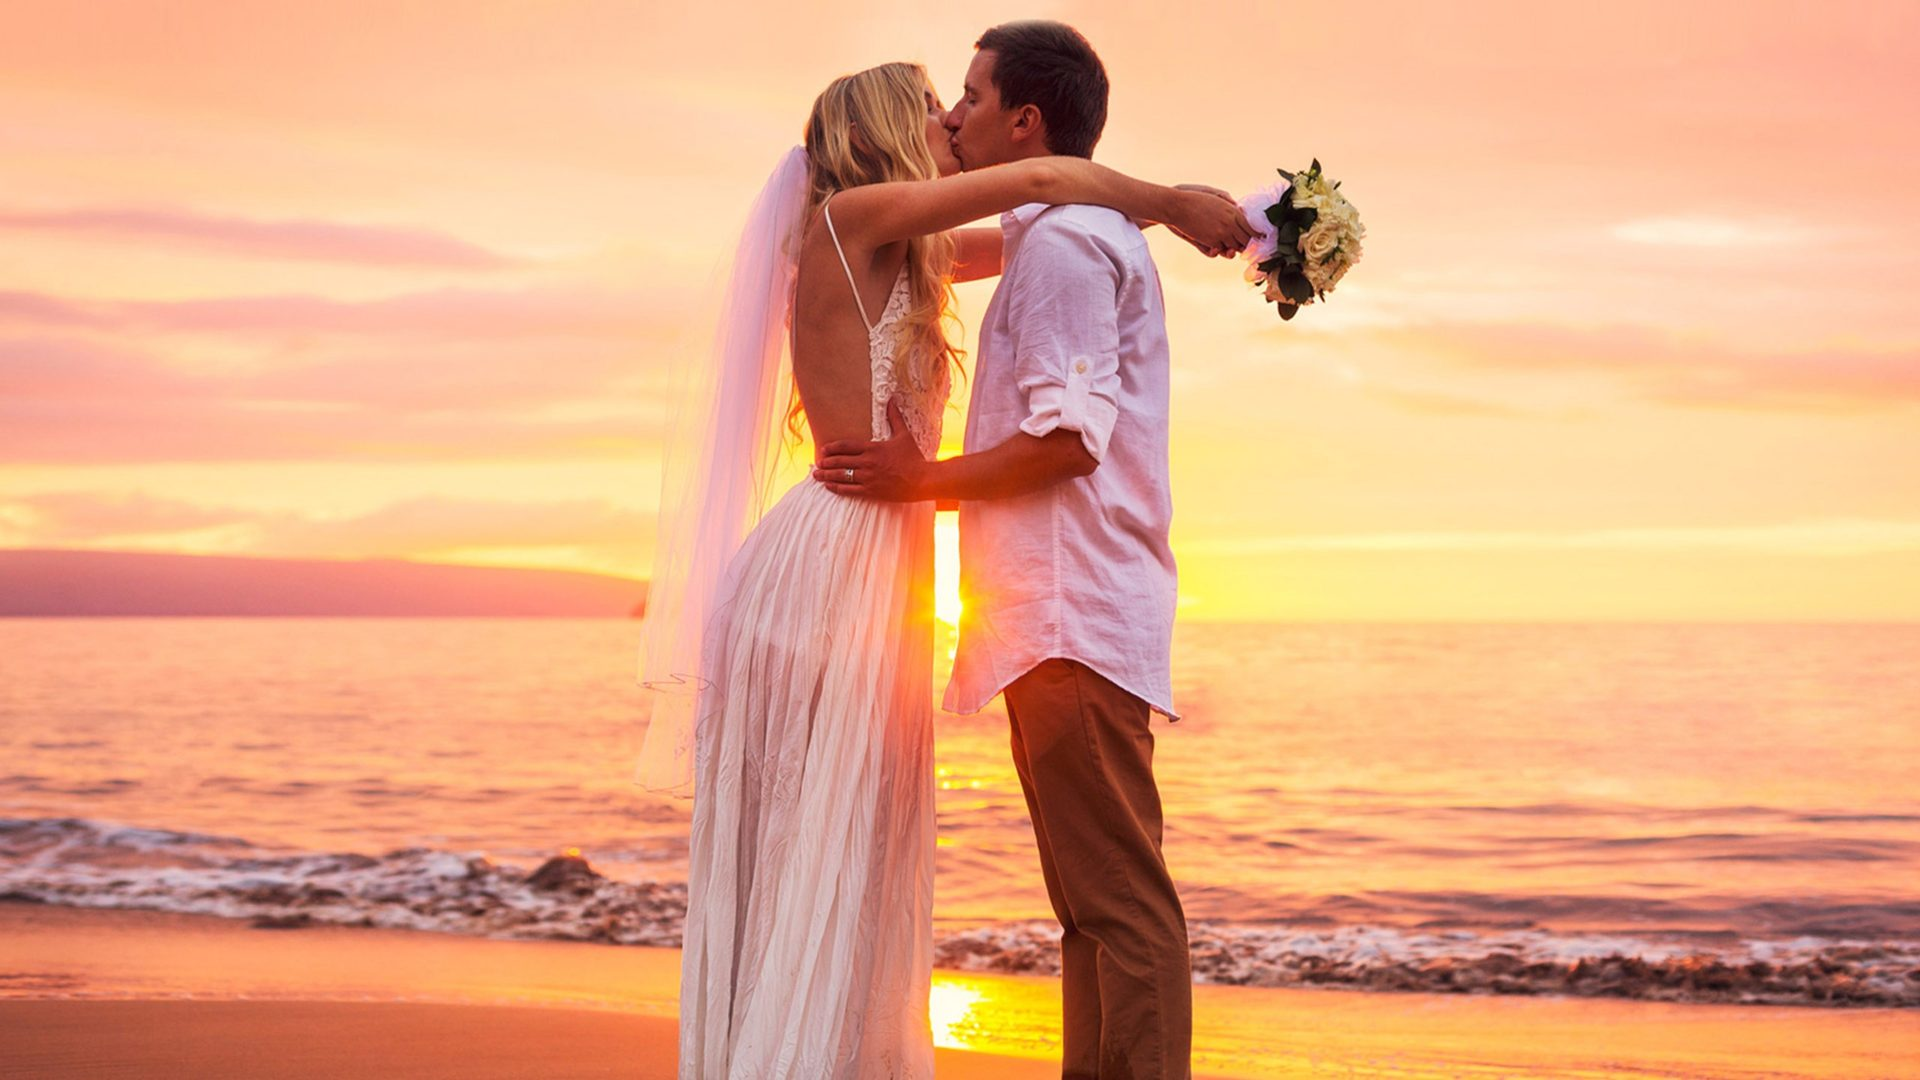 Cute Couple Wallpapers For Lock Screen Kiss At Sunset Cute Couple Marriage Newly Married Images